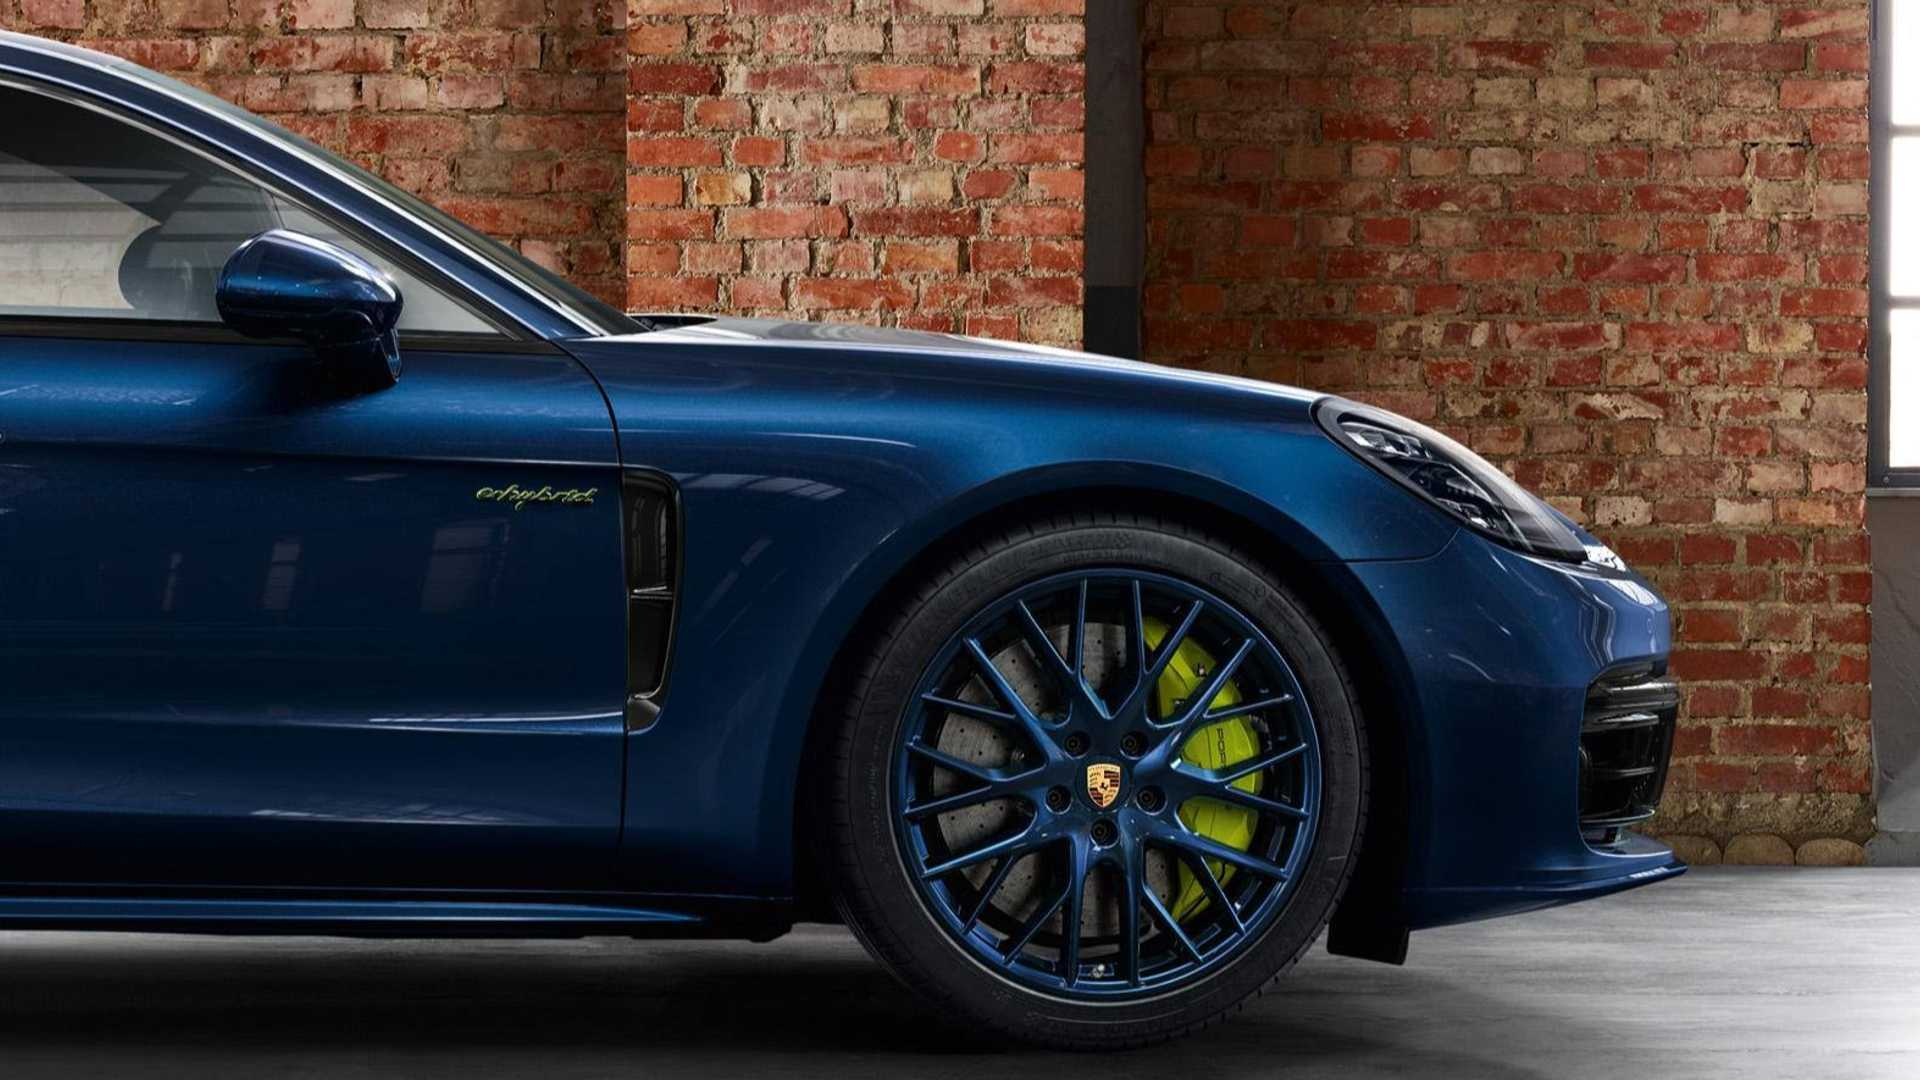 Porsche Panamera Turbo S E-Hybrid Blue Wheels